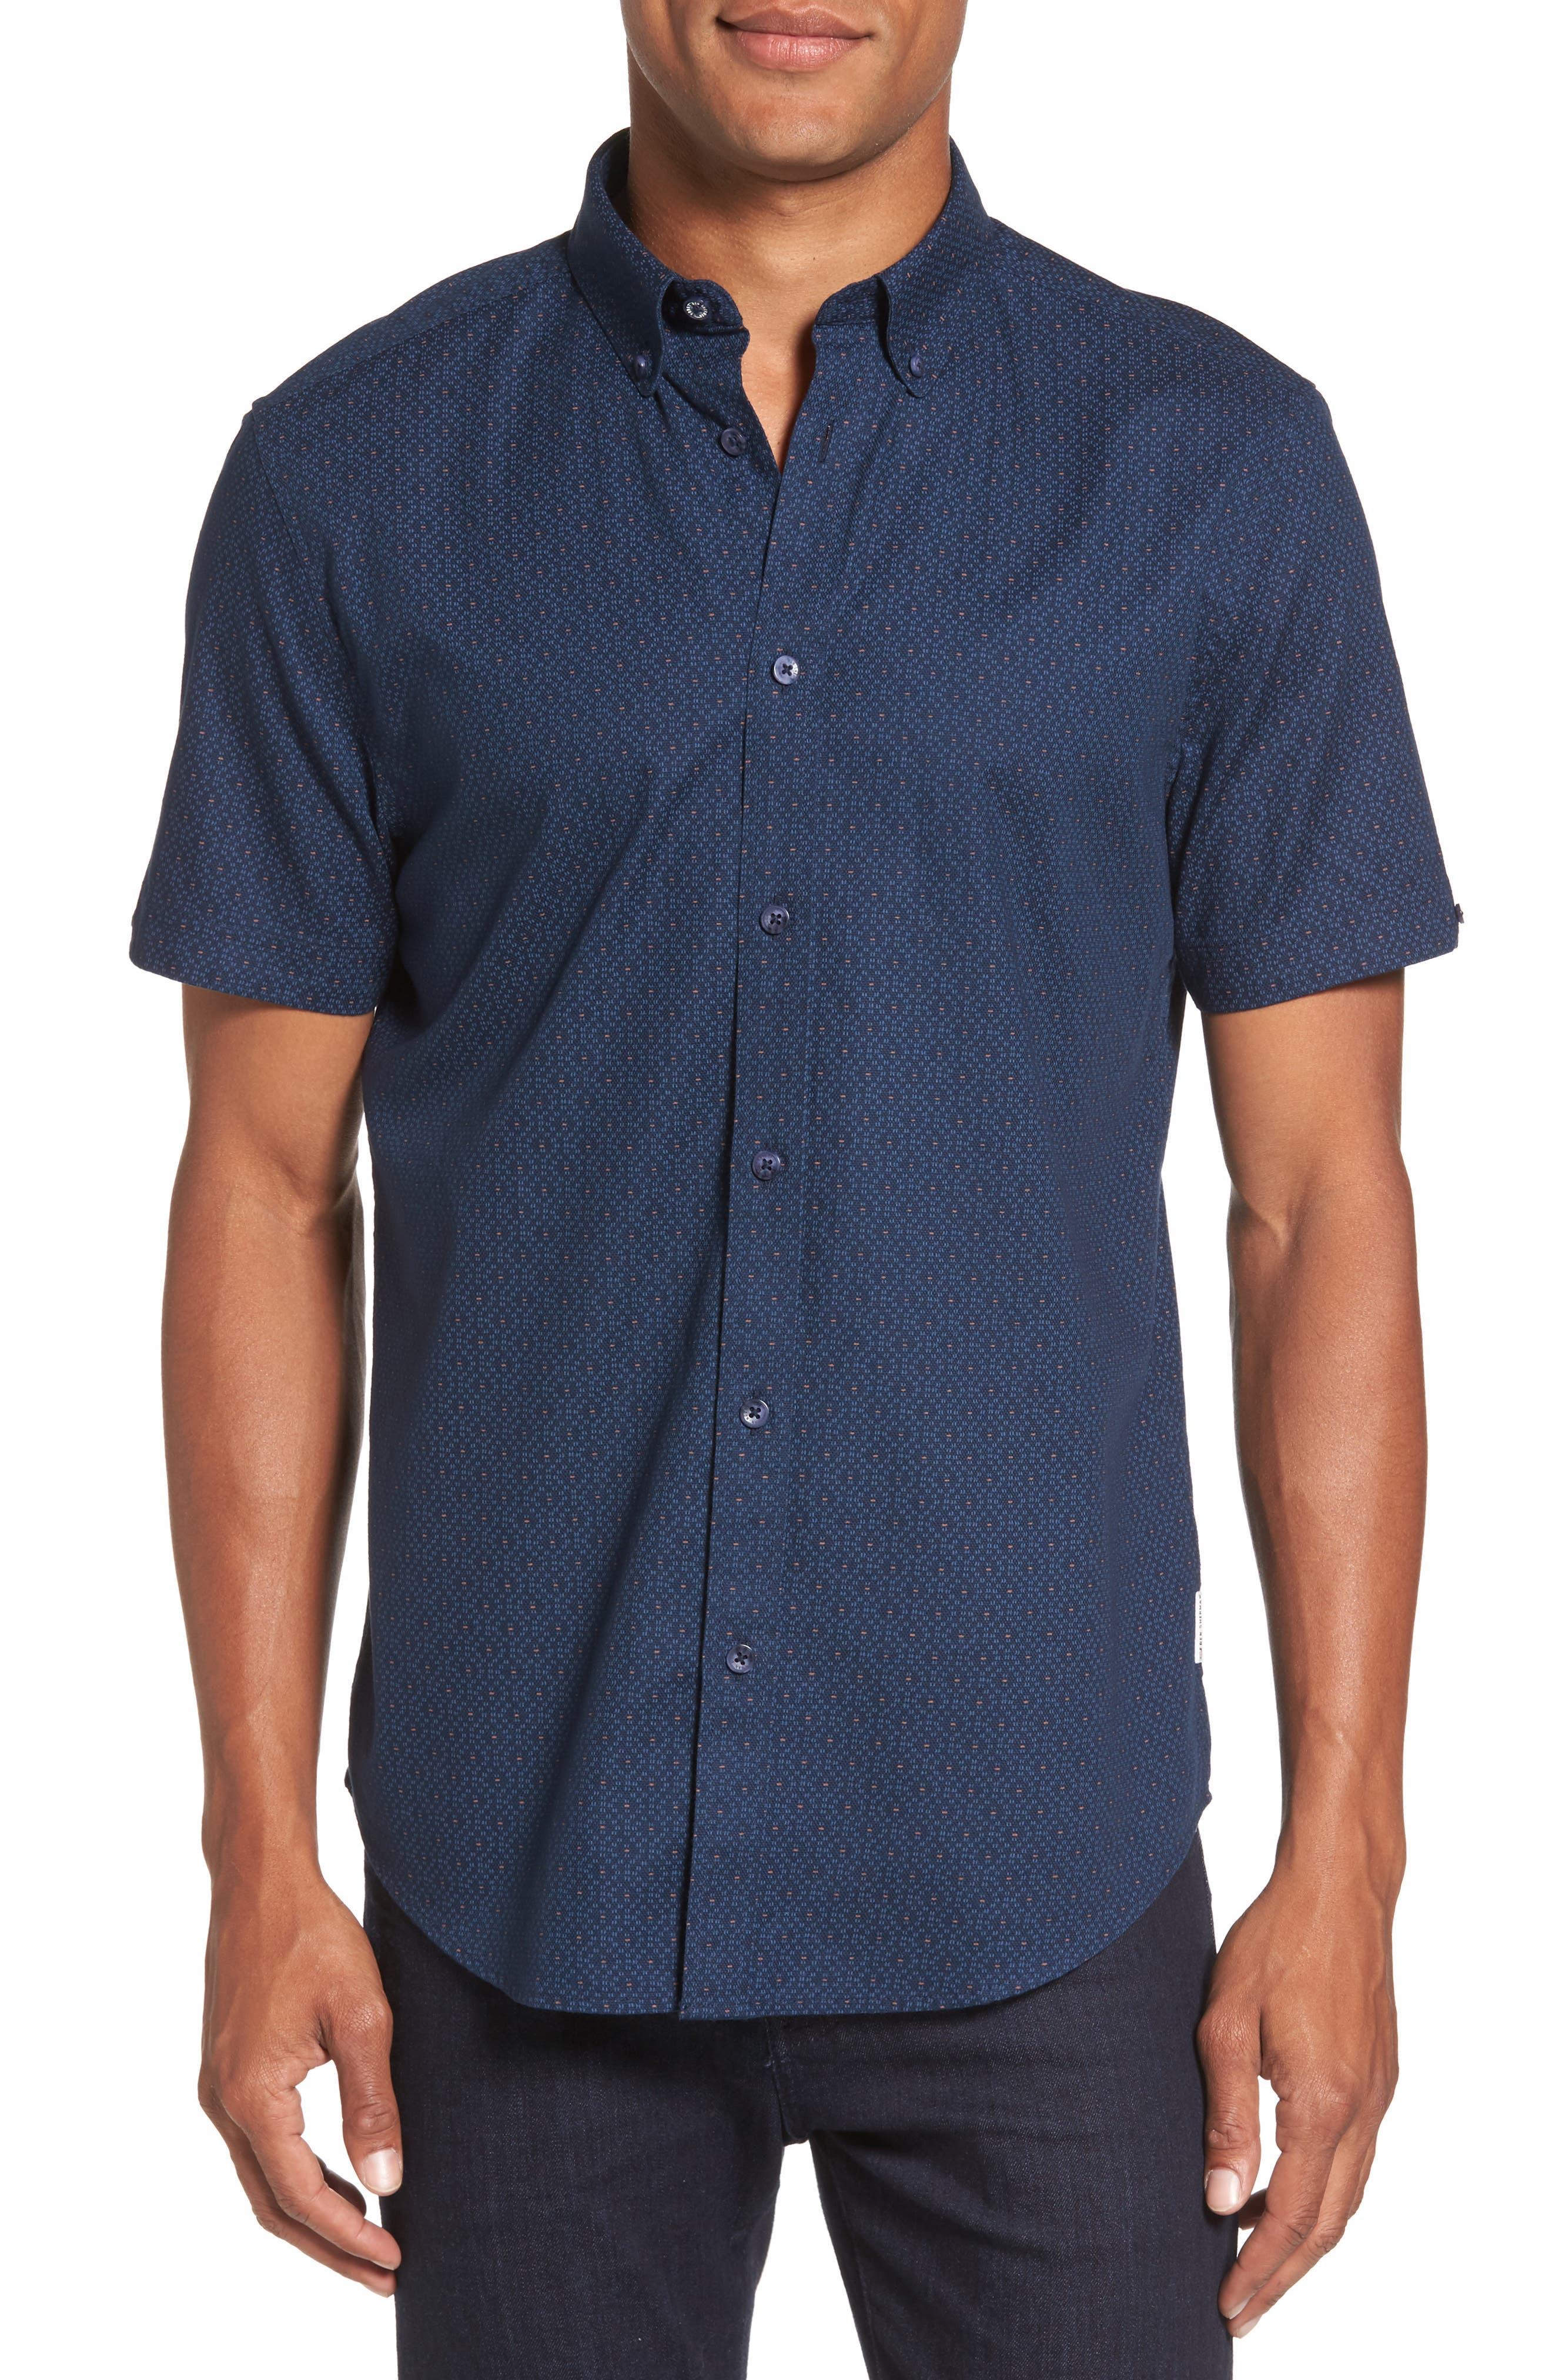 Ben Sherman Textured Dash Print Short Sleeve Shirt